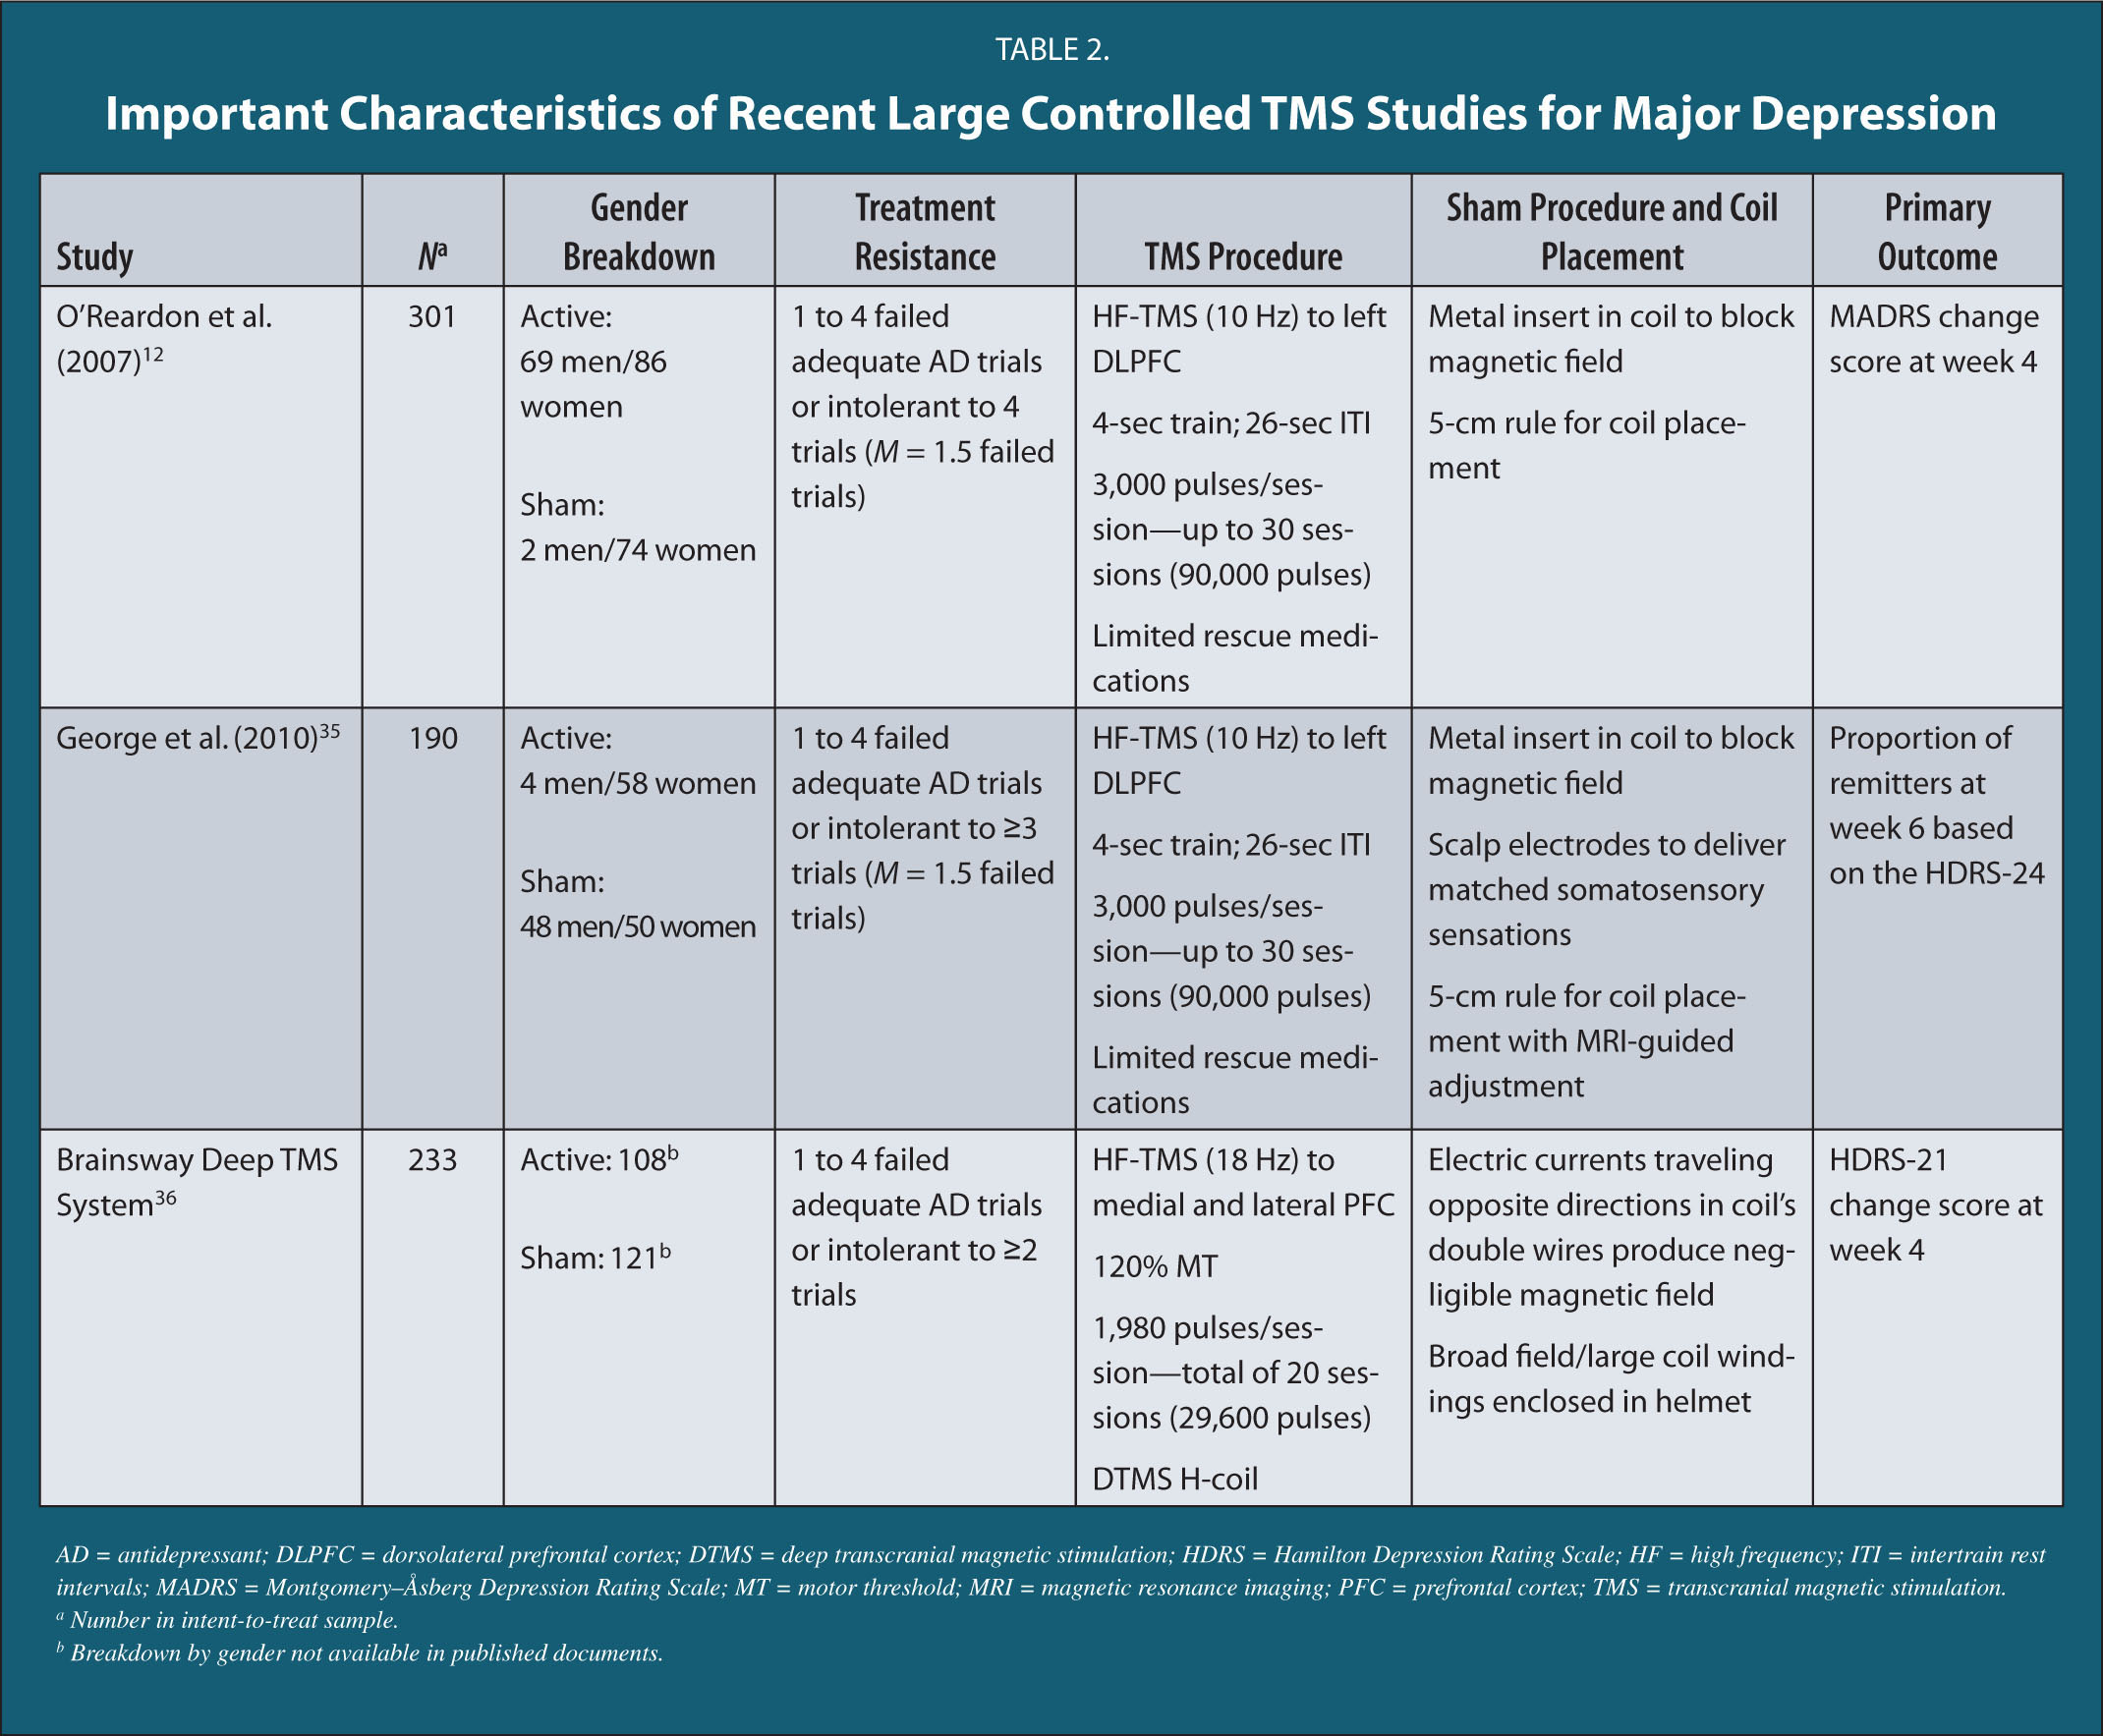 Important Characteristics of Recent Large Controlled TMS Studies for Major Depression